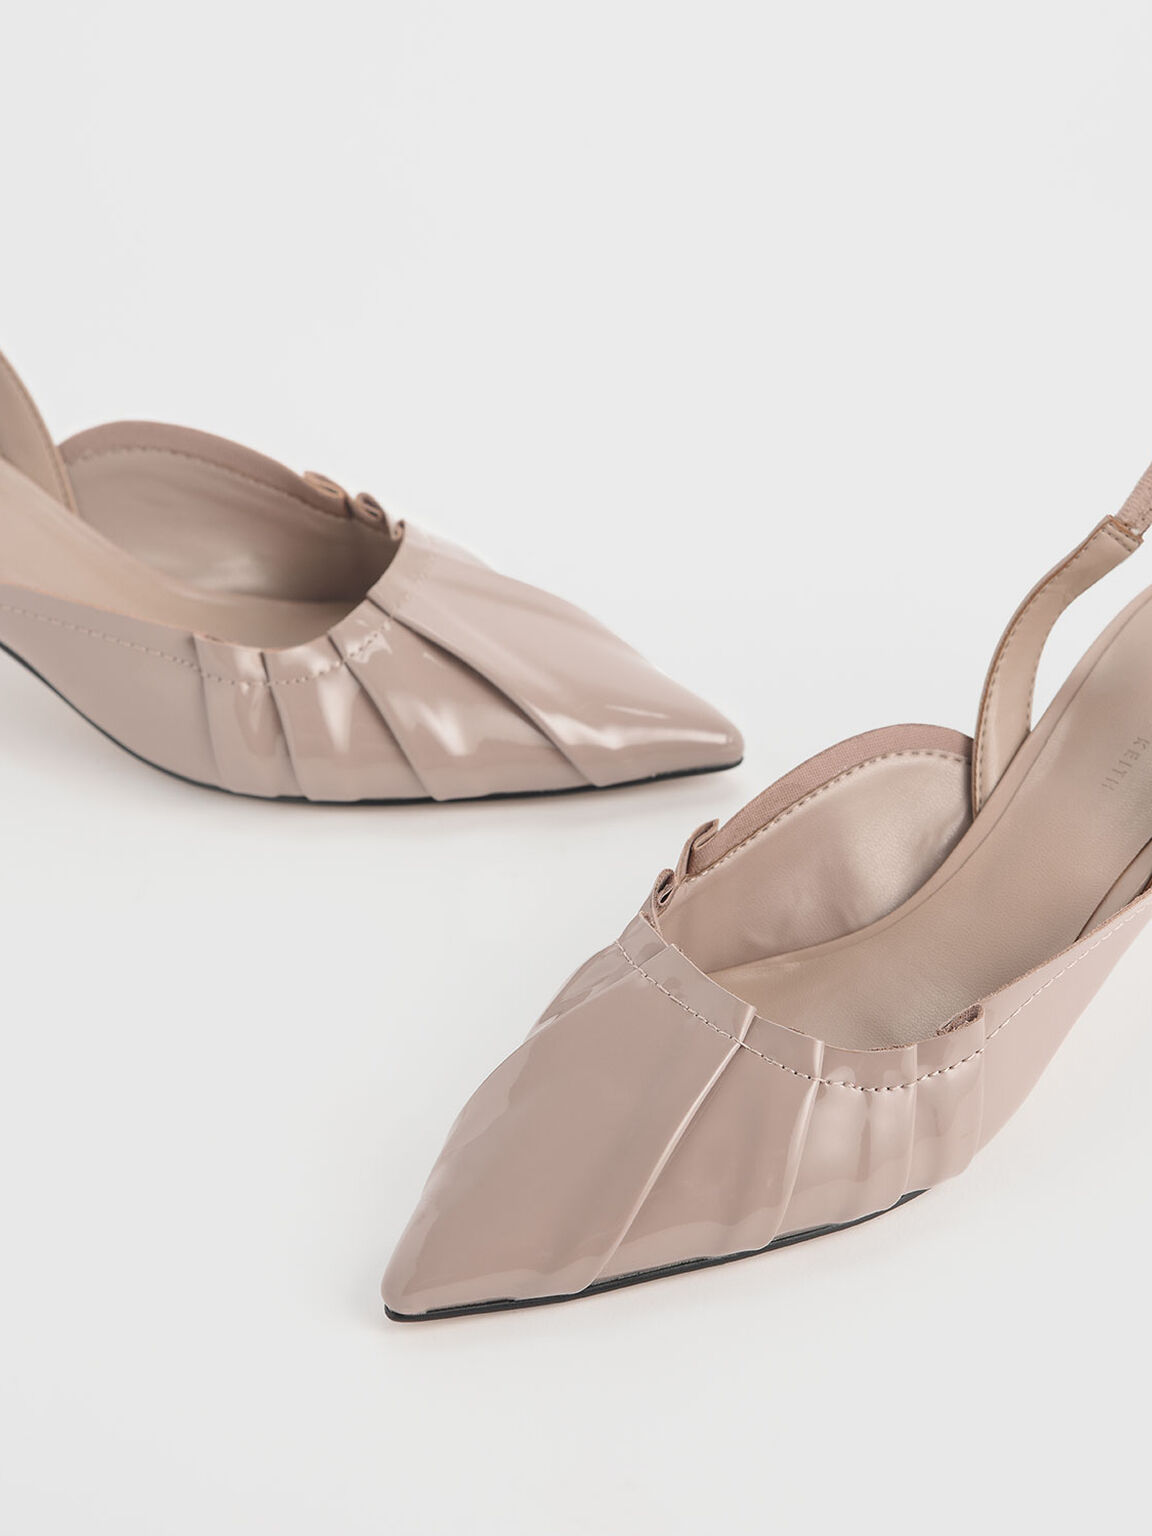 Ruched Patent Slingback Heels, Nude, hi-res